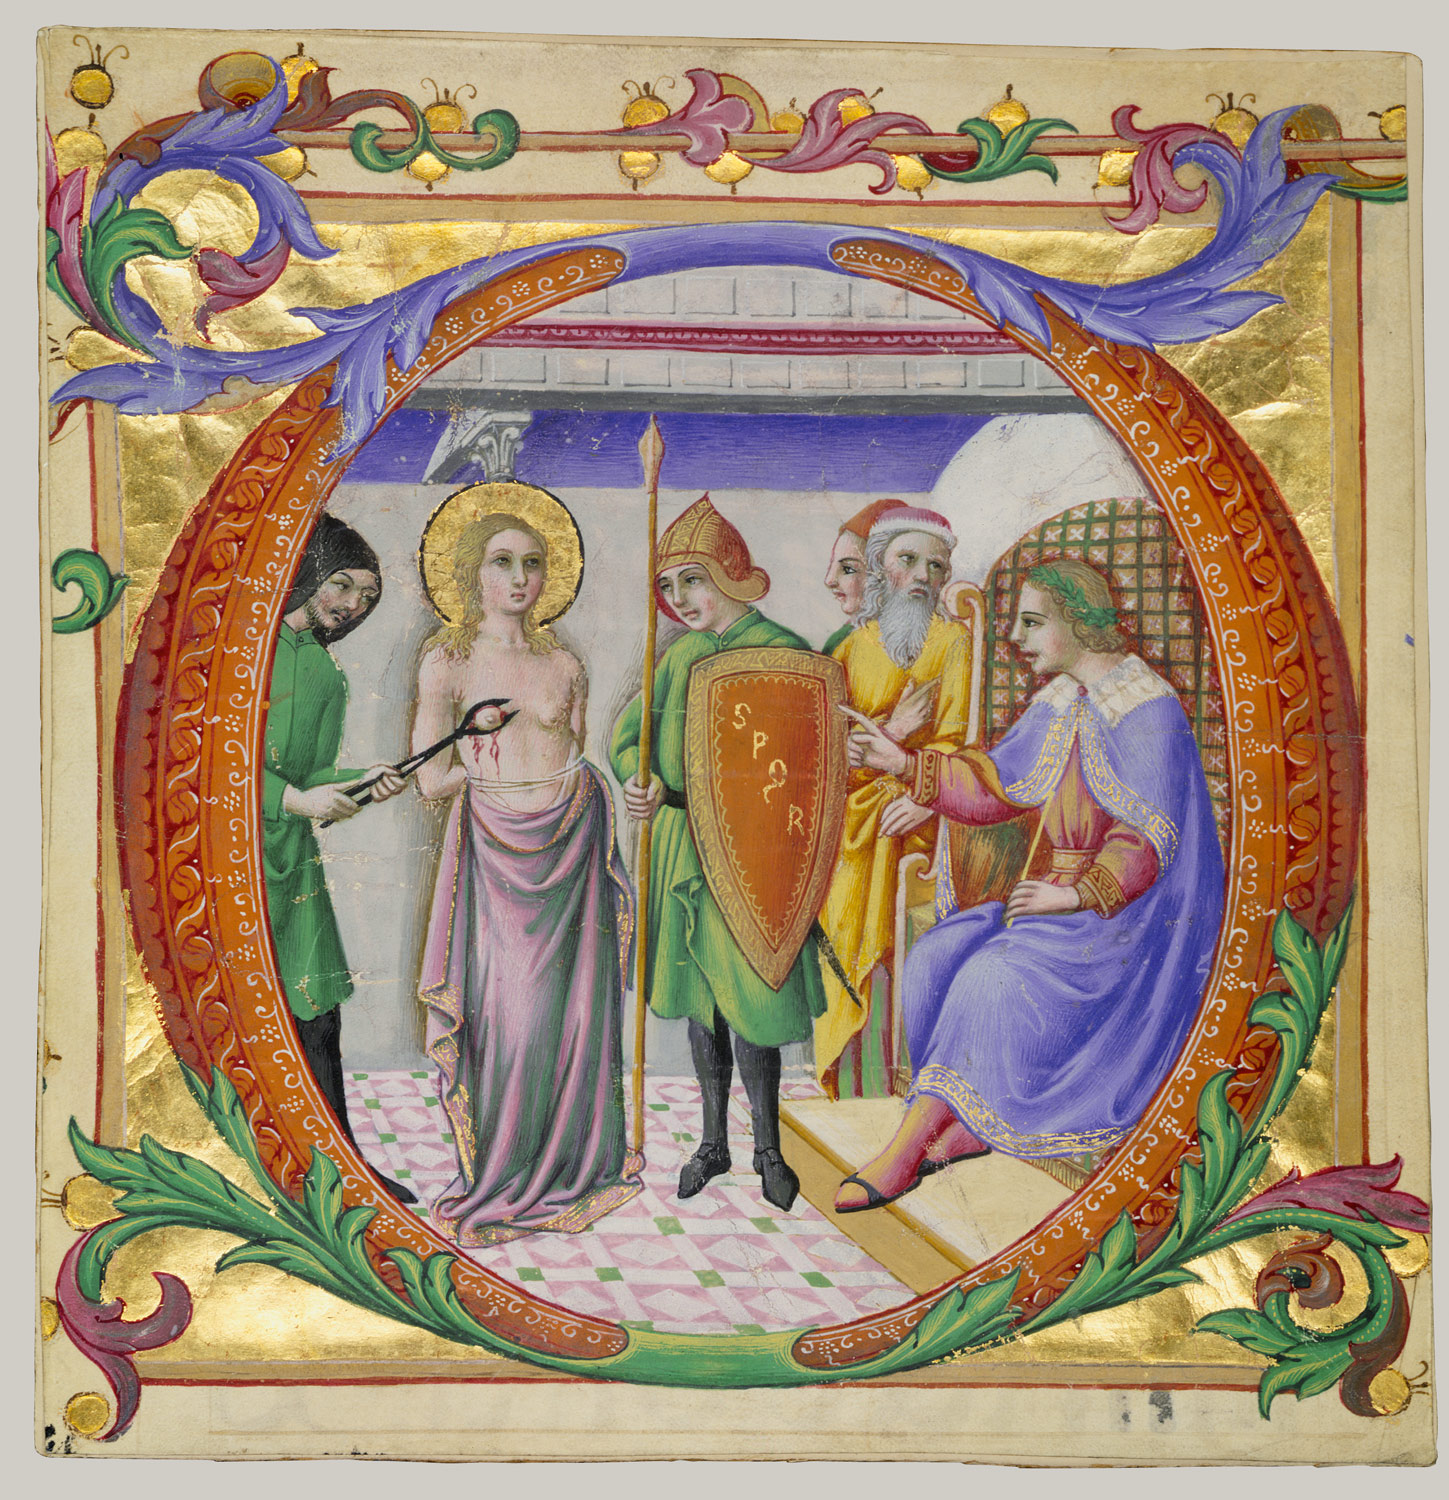 Martyrdom of Saint Agatha in an Initial D